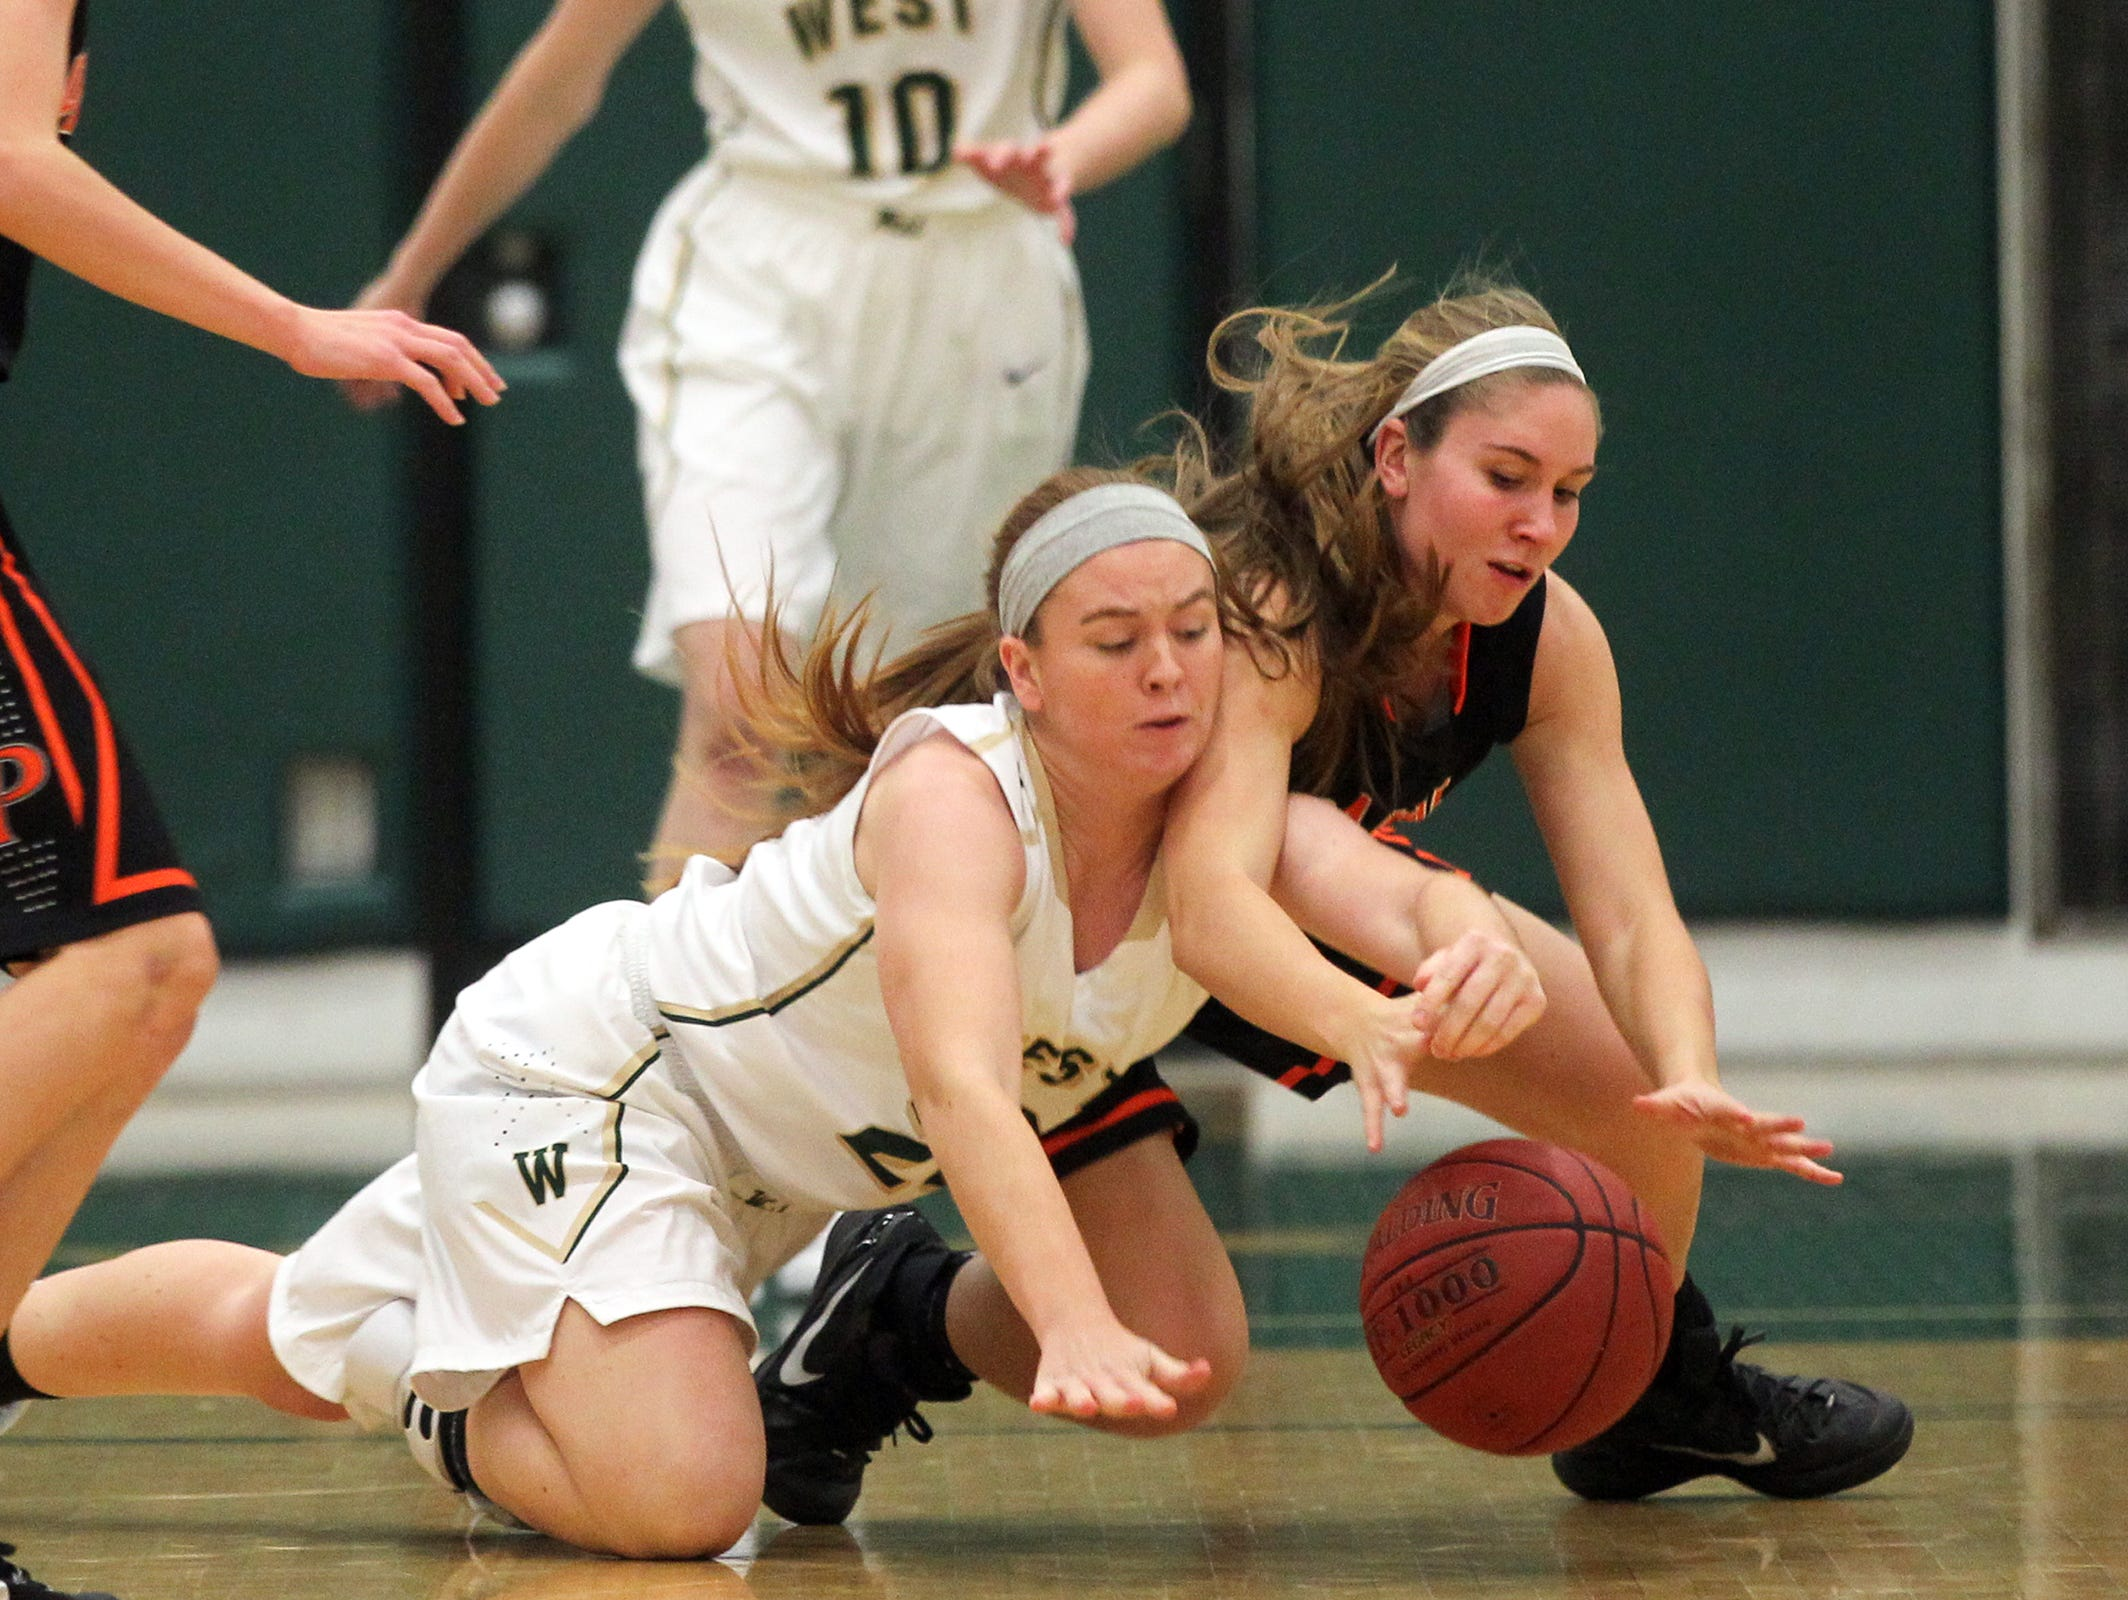 West High's Jessie Harder and Cedar Rapids Prairie's Taylor Moenk fight for the ball during their game on Tuesday, Dec. 1, 2015.